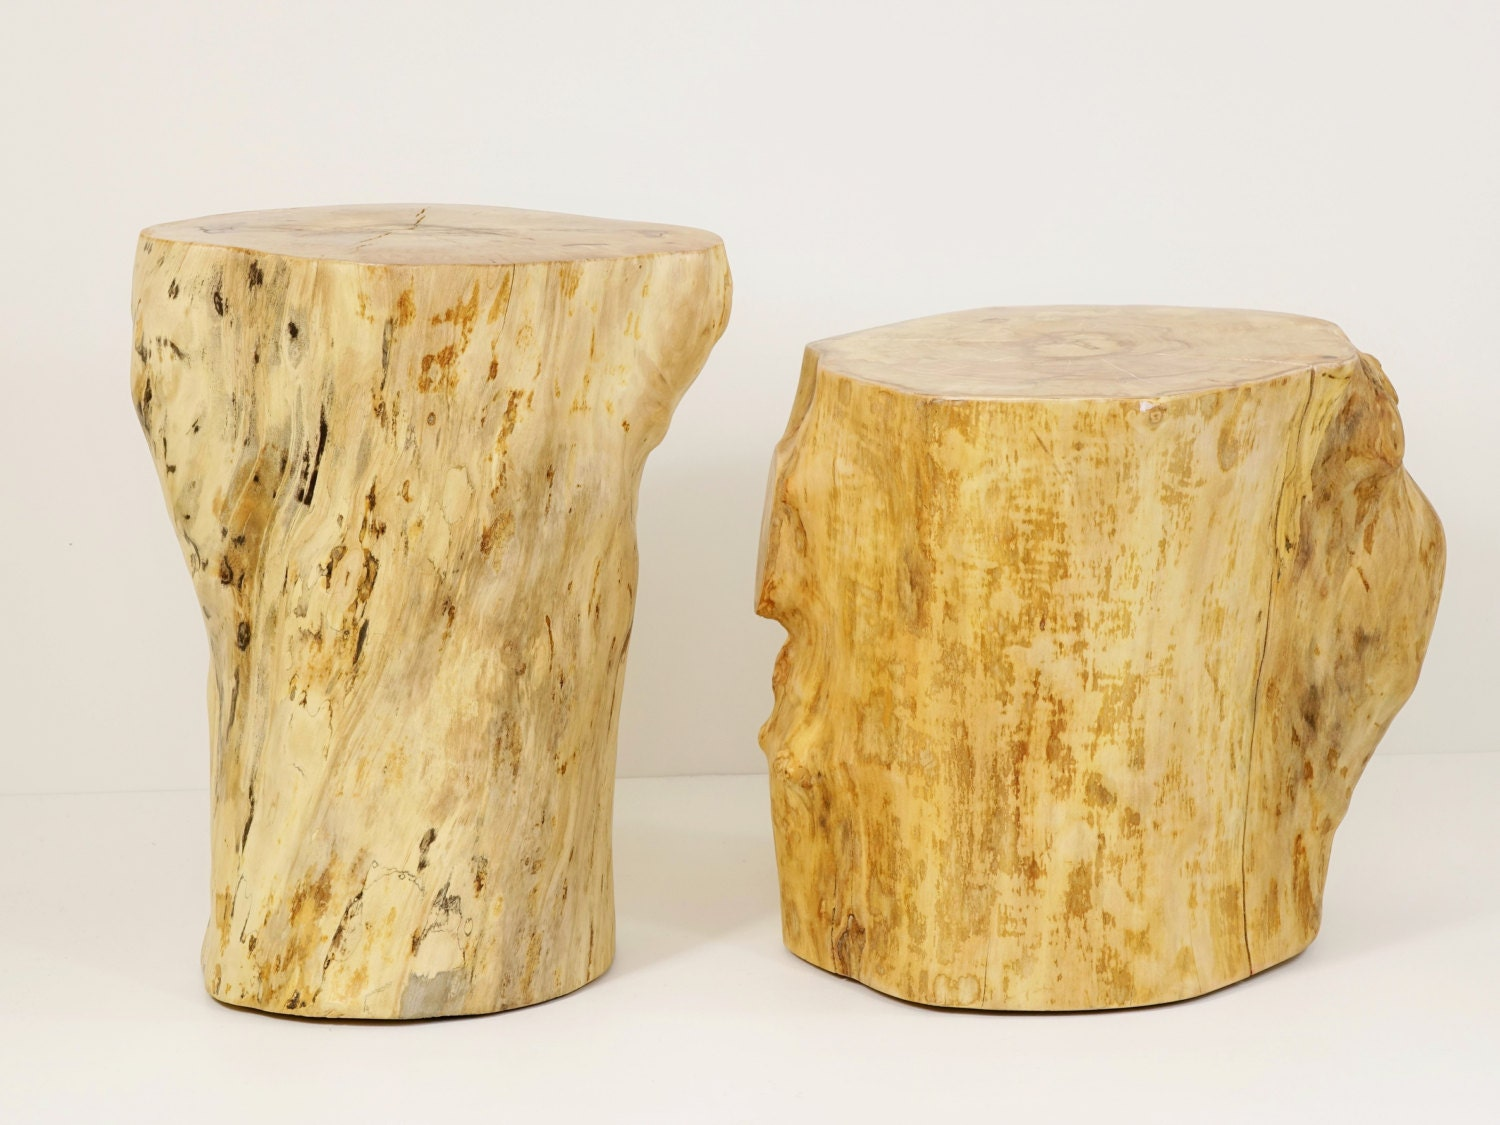 wood stump stool clone tree trunk bedside stump table. Black Bedroom Furniture Sets. Home Design Ideas